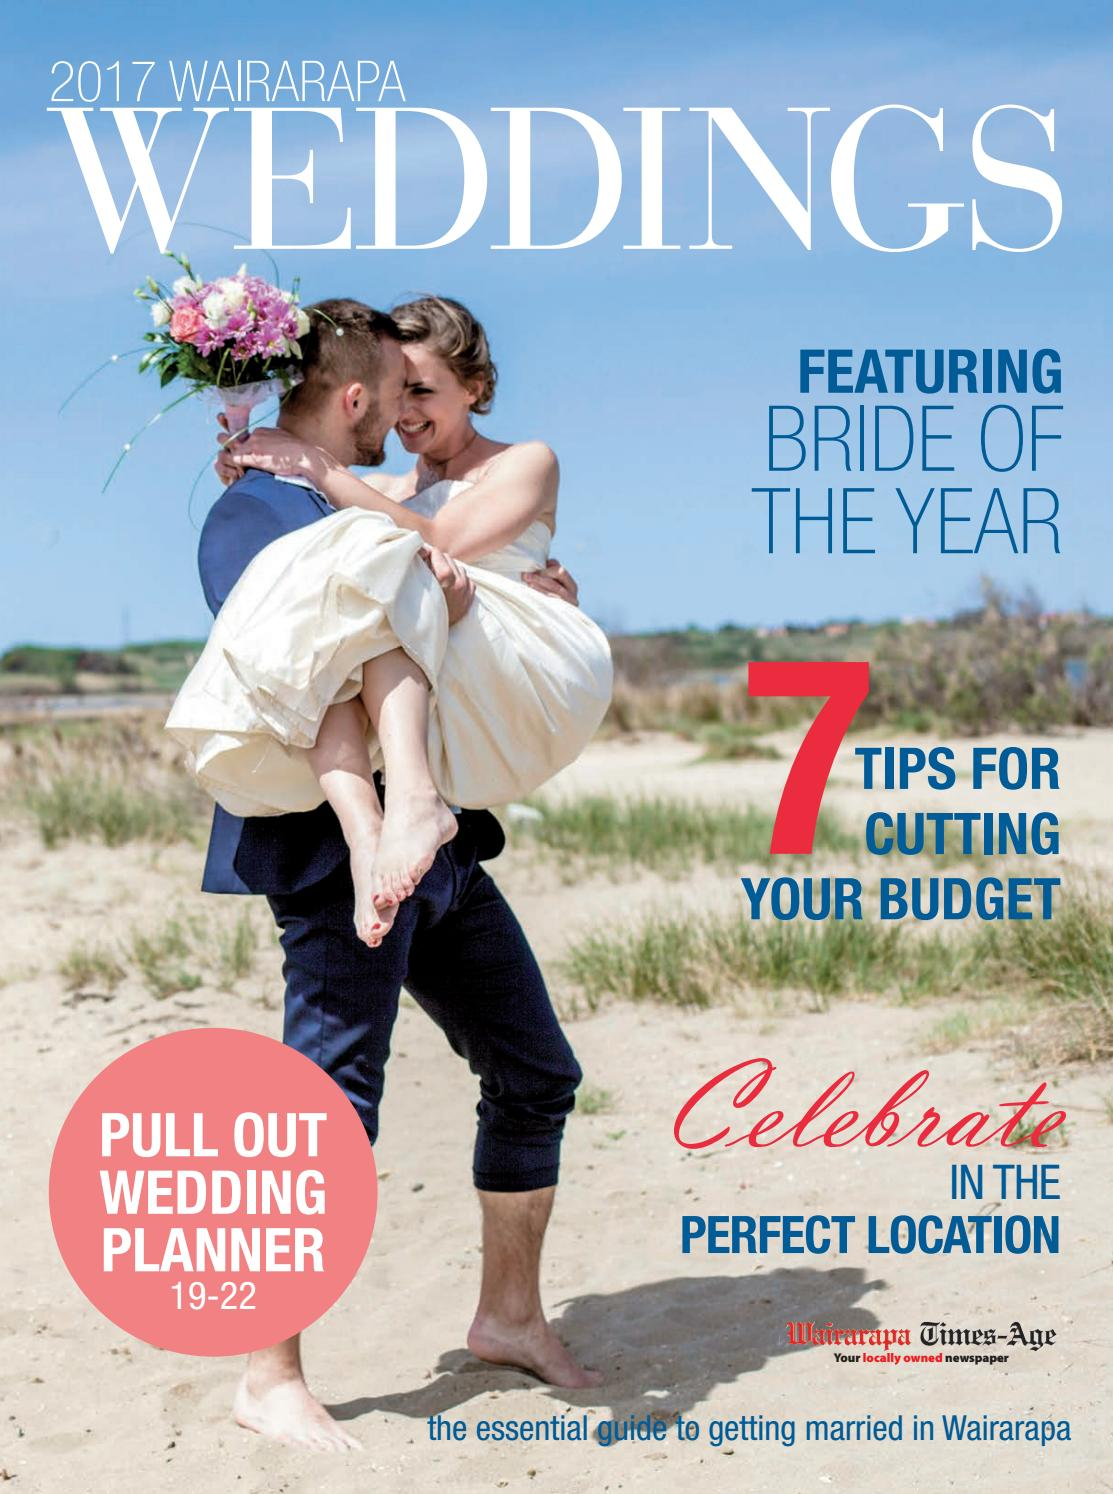 Wairarapa Weddings 2017 By Wairarapa Times Age Issuu